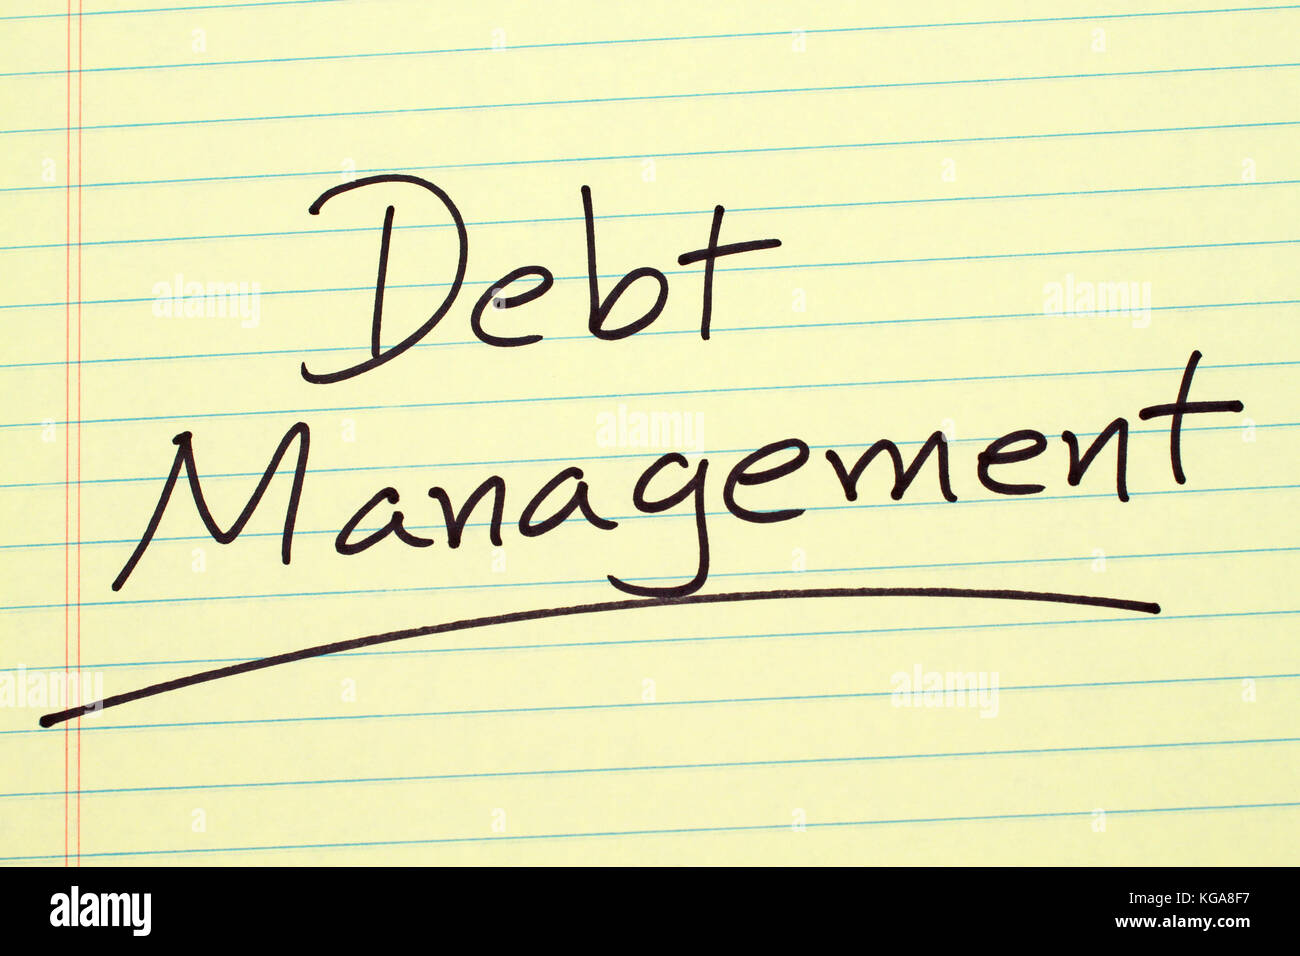 The word 'Debt Management' underlined on a yellow legal pad - Stock Image